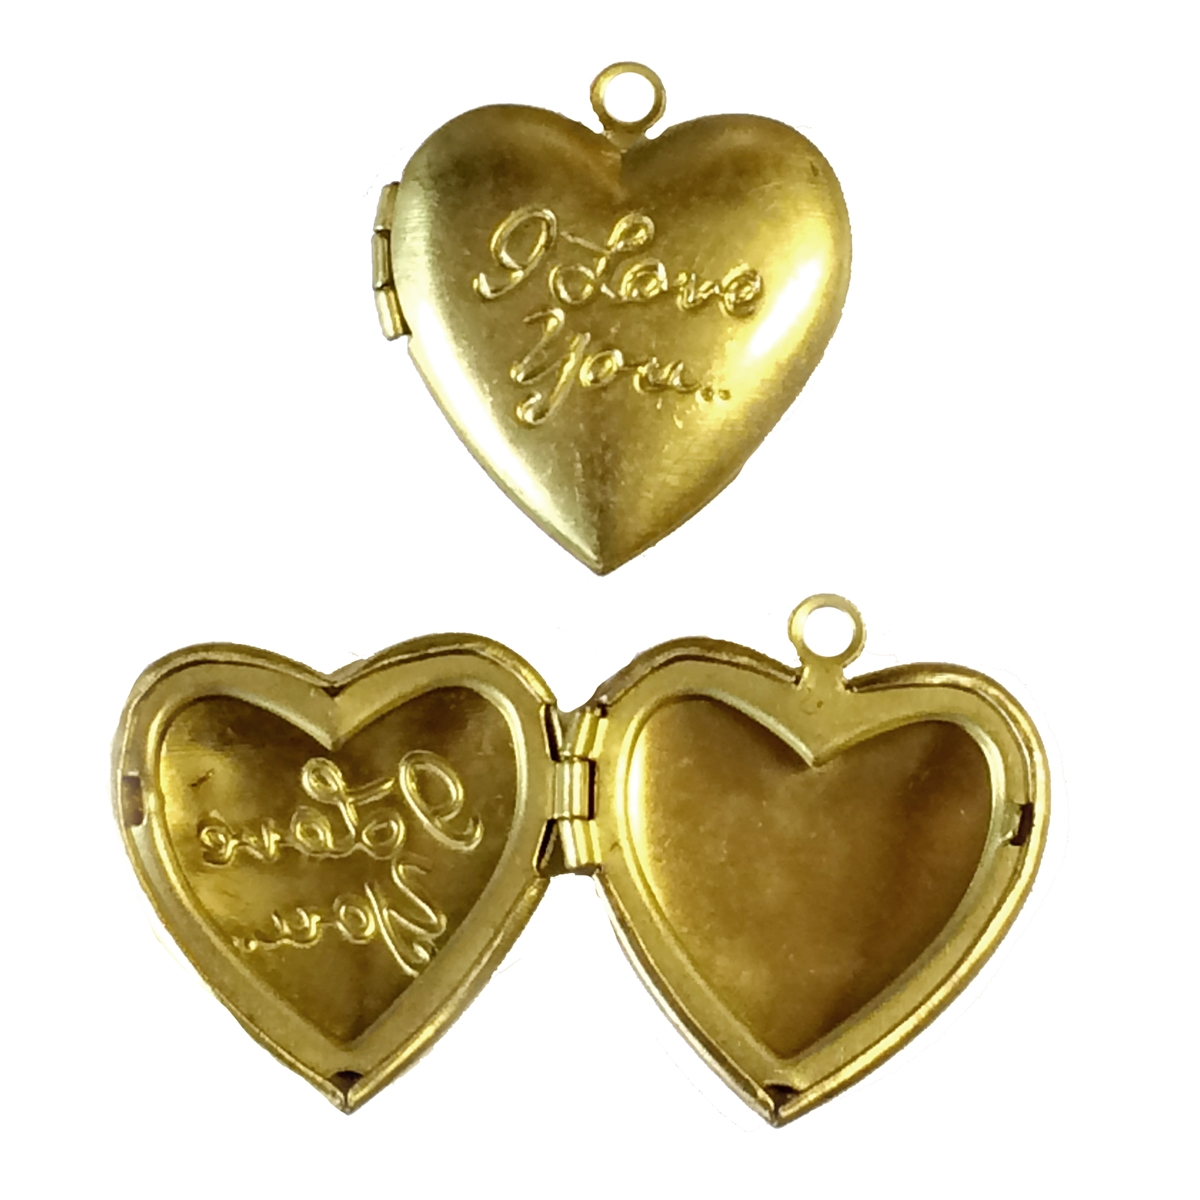 heart plated silver lockets locket sterling length rose width mm weight flower p border gold grams